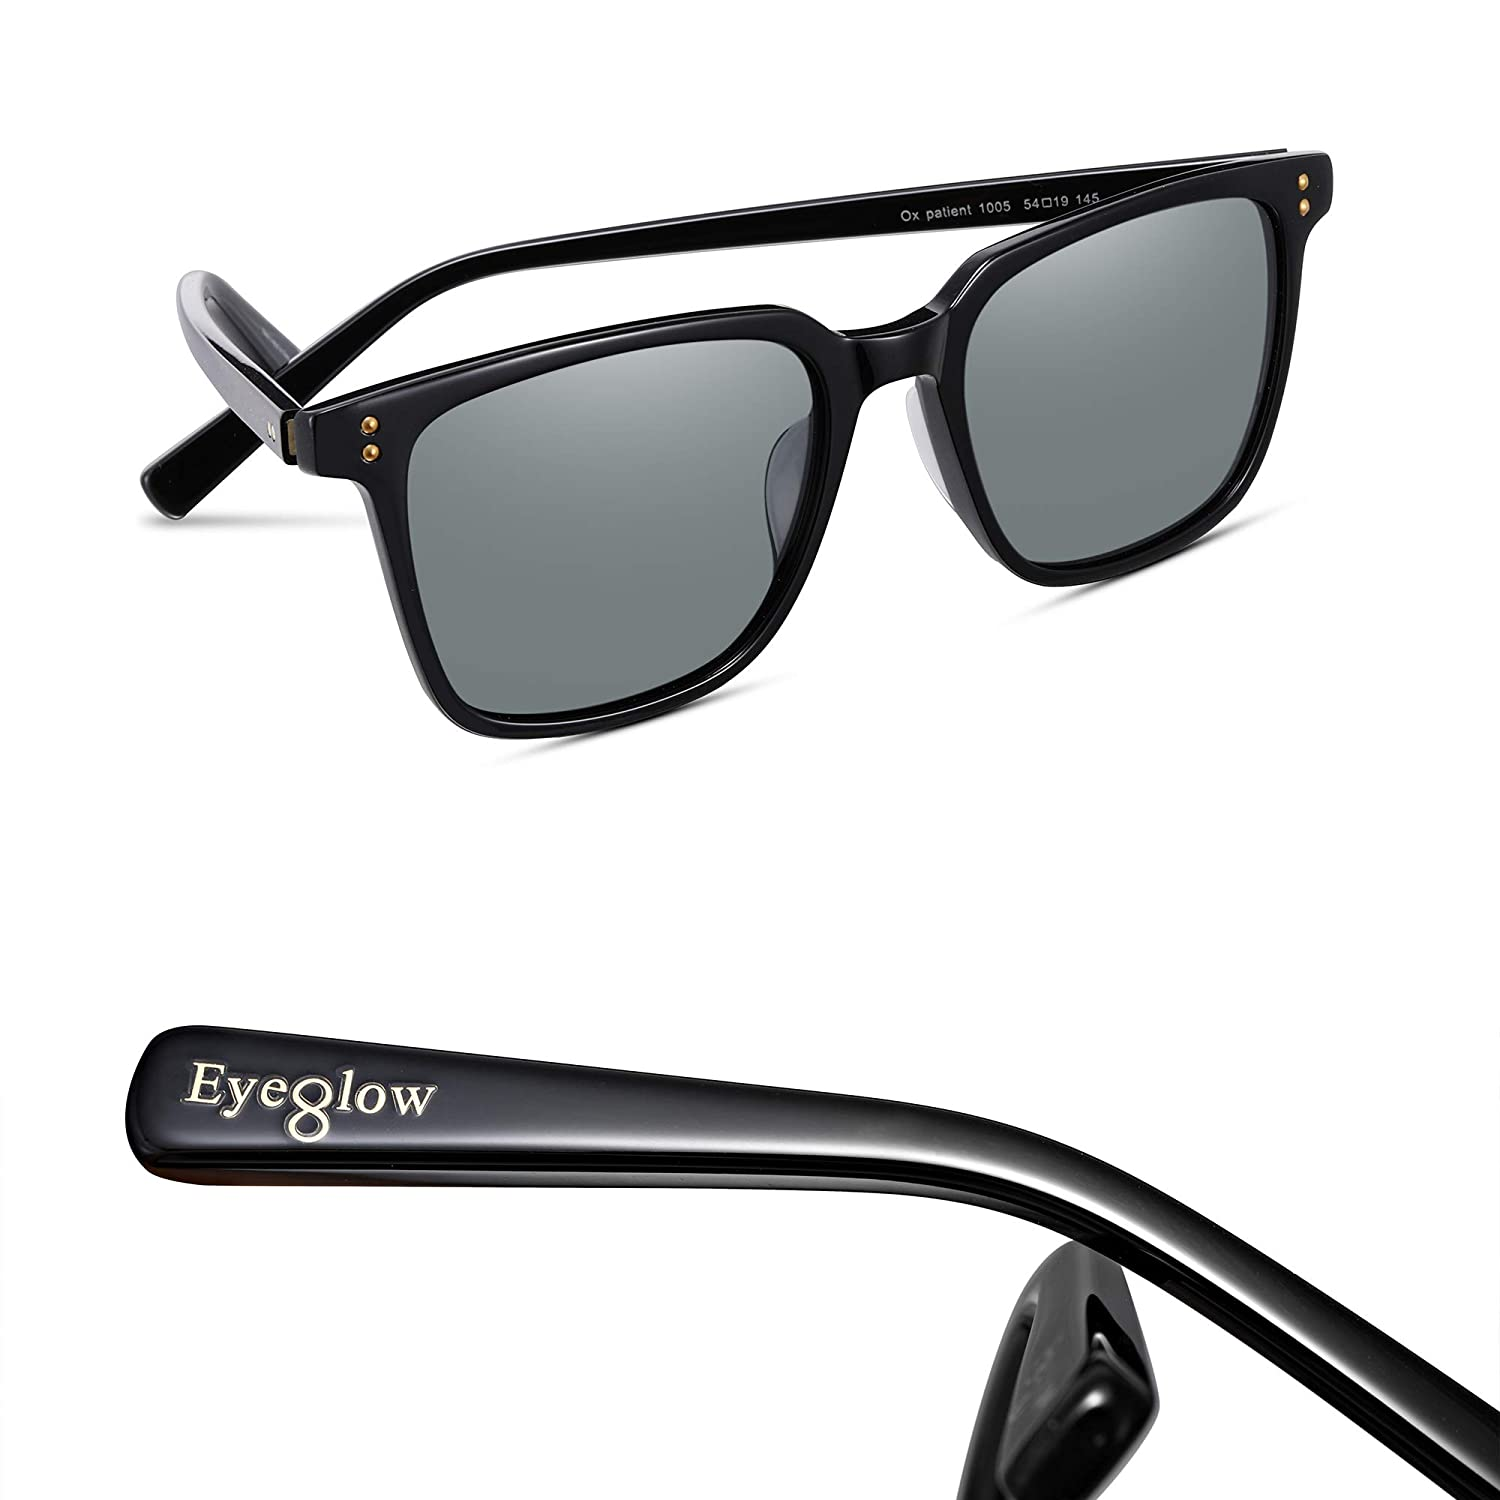 a69c02ad4c Amazon.com  EyeGlow Vintage Square Designer Sunglasses Men and Women  Polarized Lens S6801 (Black vs Grey lens